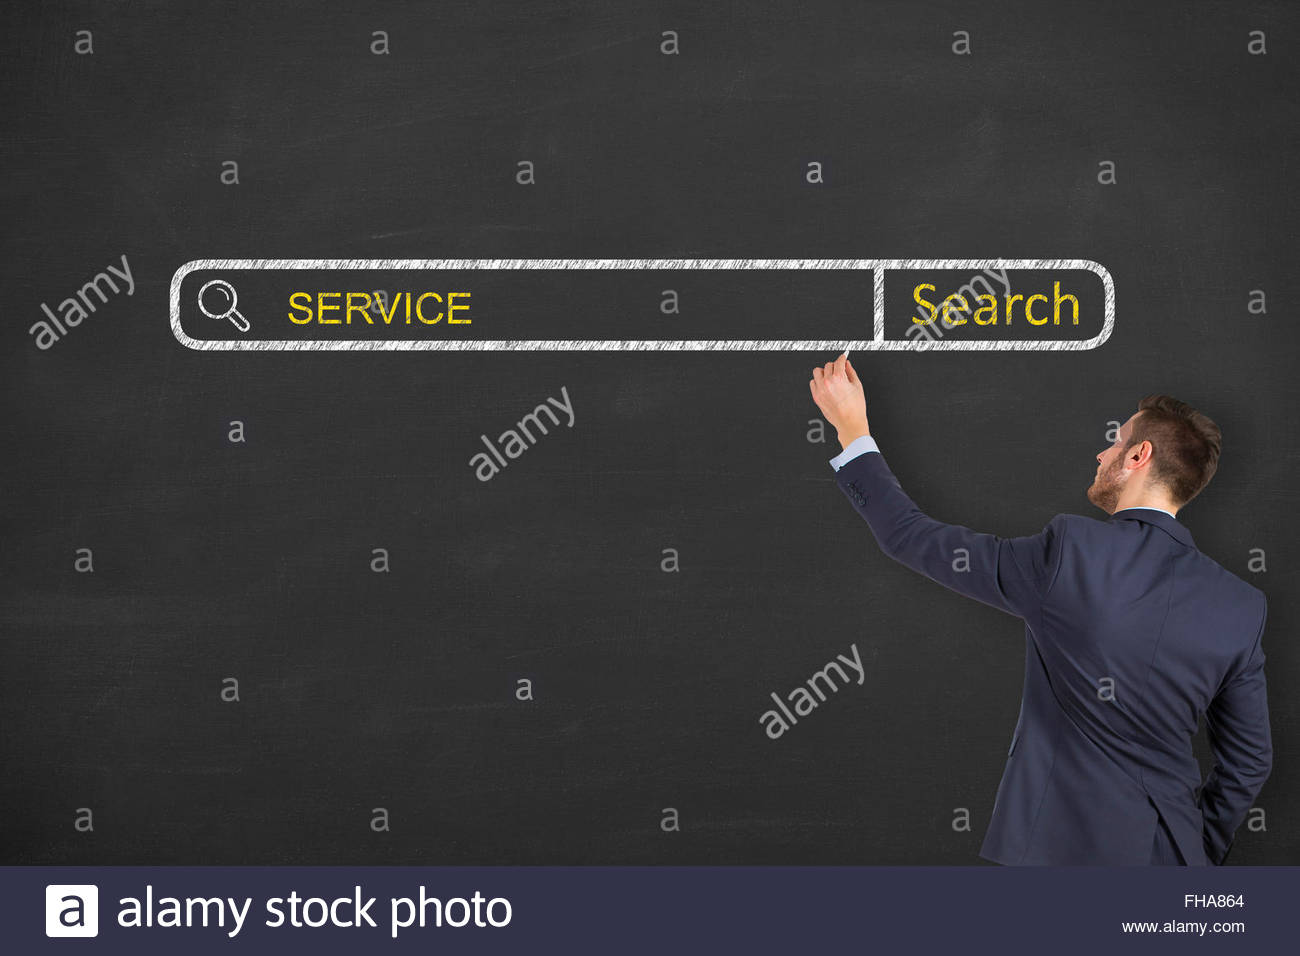 Service Search Engine on Chalkboard Stock Photo